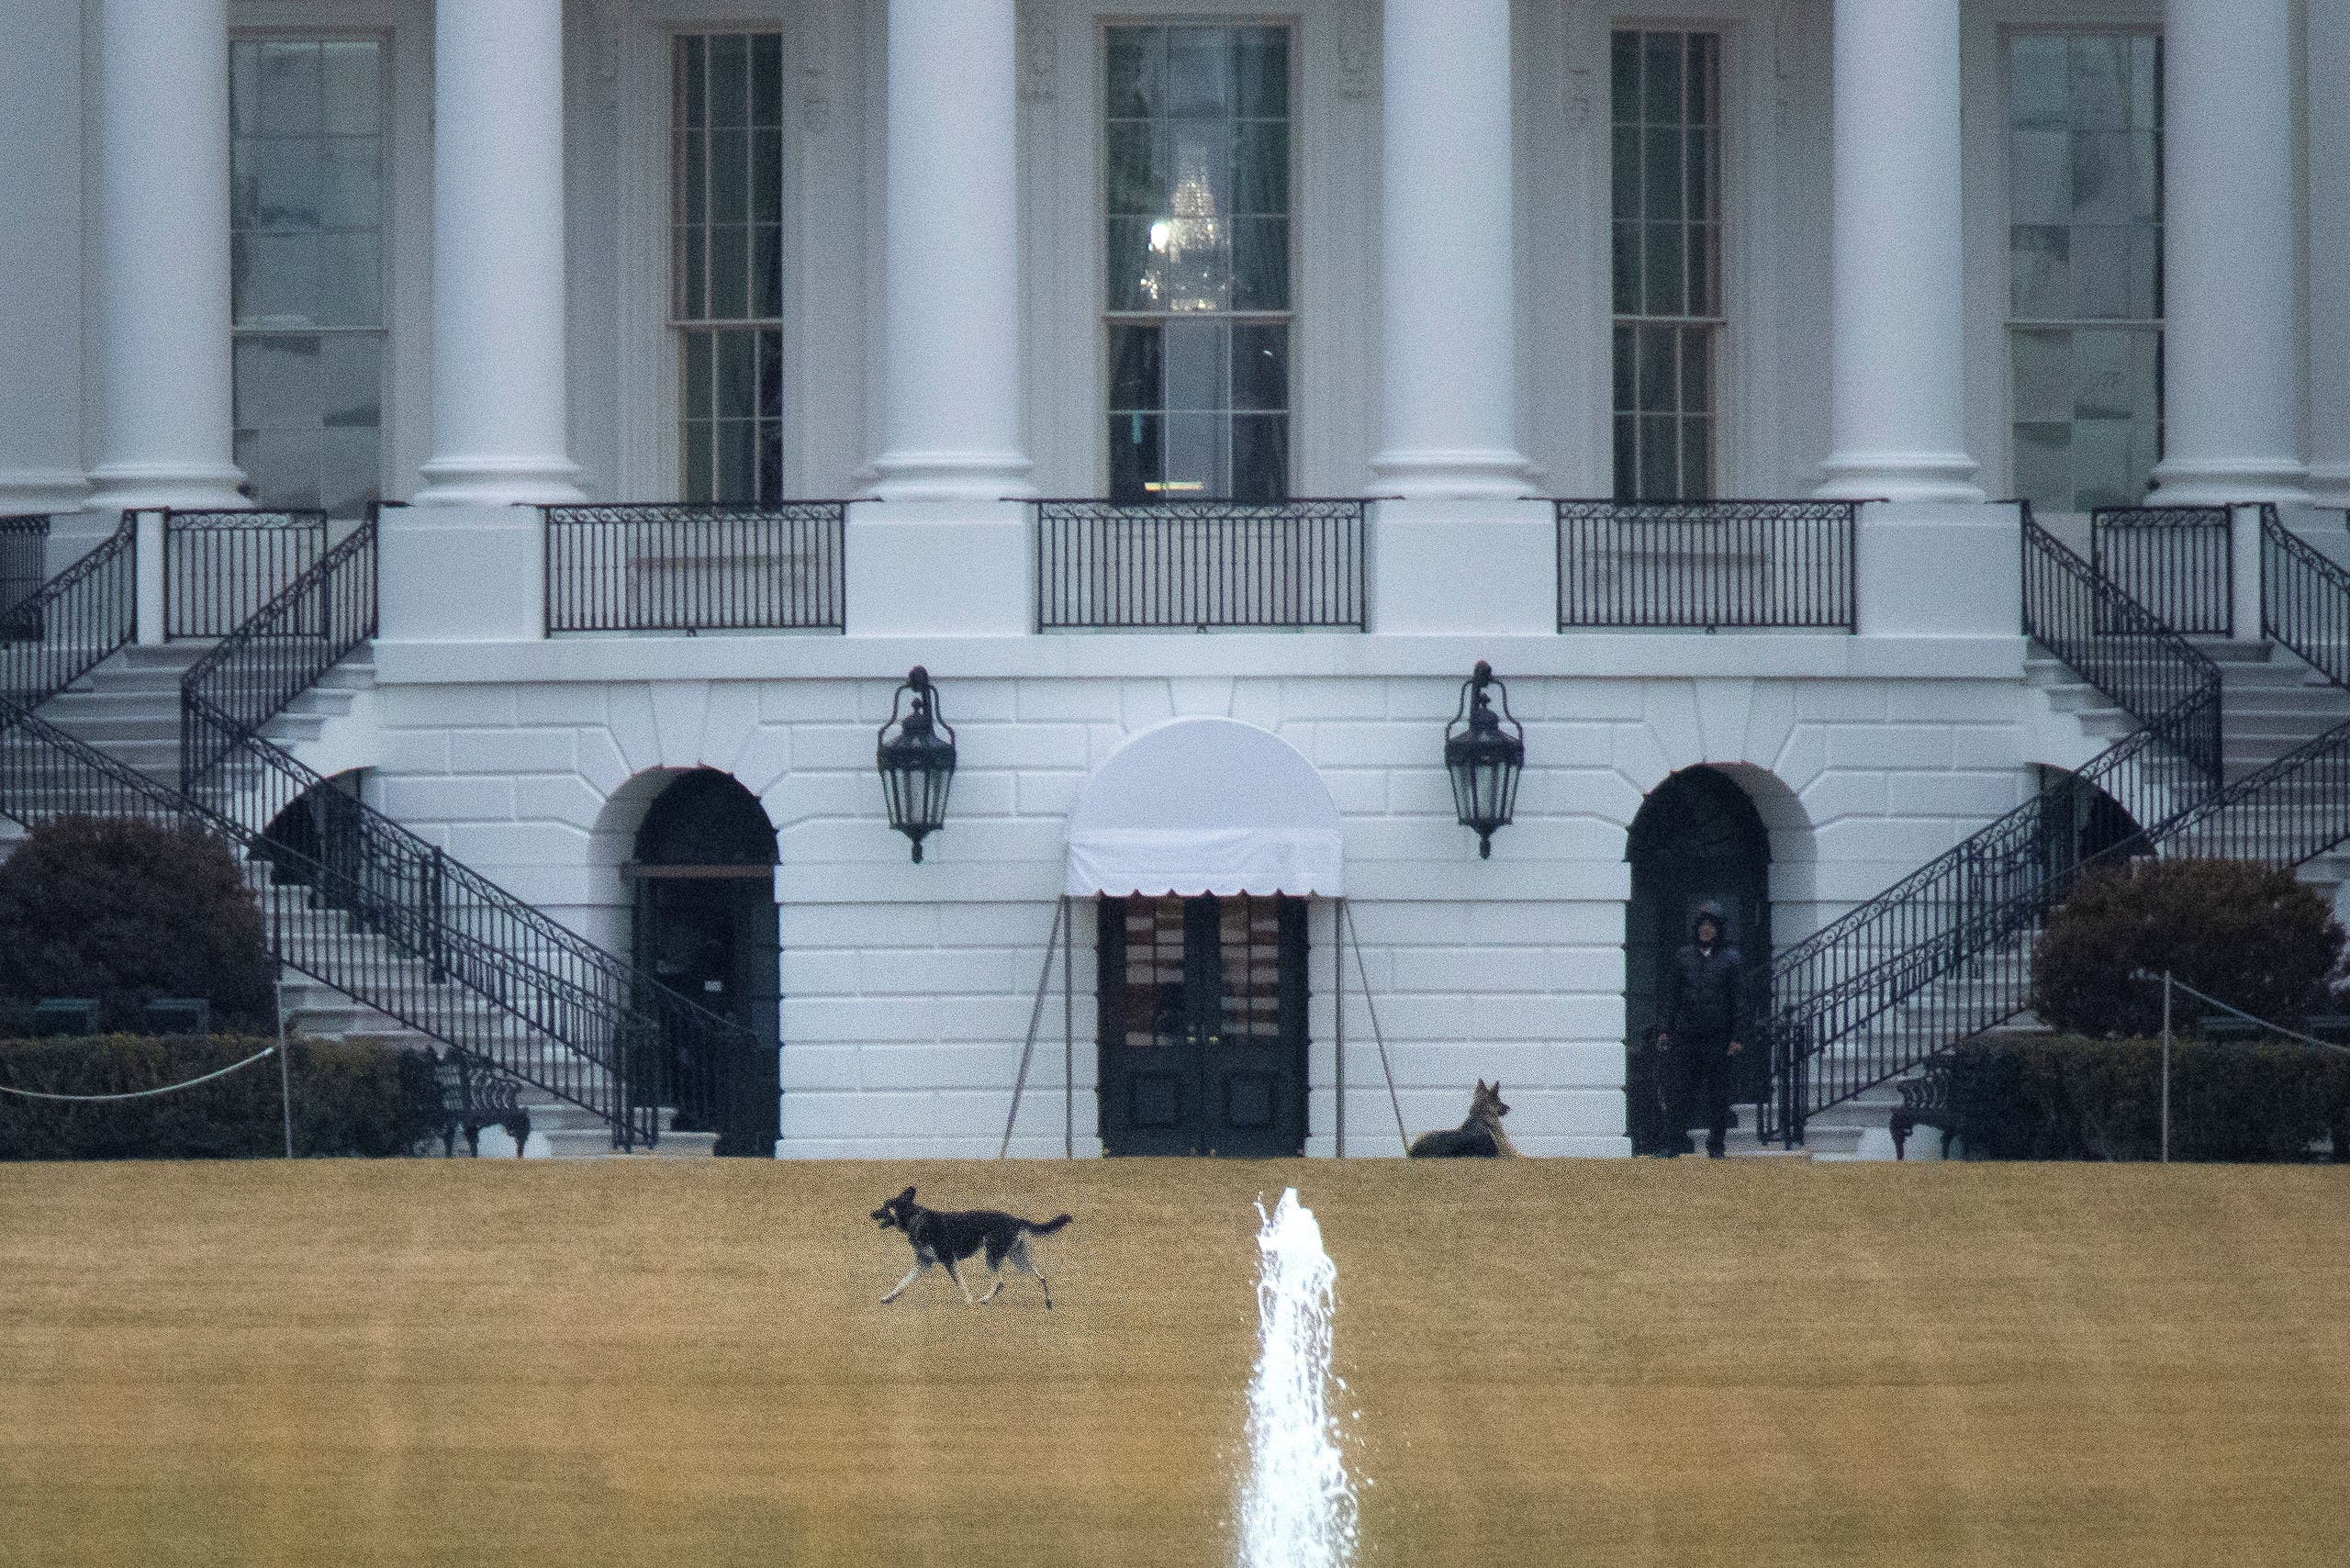 US President Joe Biden's dogs Champ and Major, known as the First Dogs, are seen on the South Lawn at the White House in Washington, US. (Reuters)